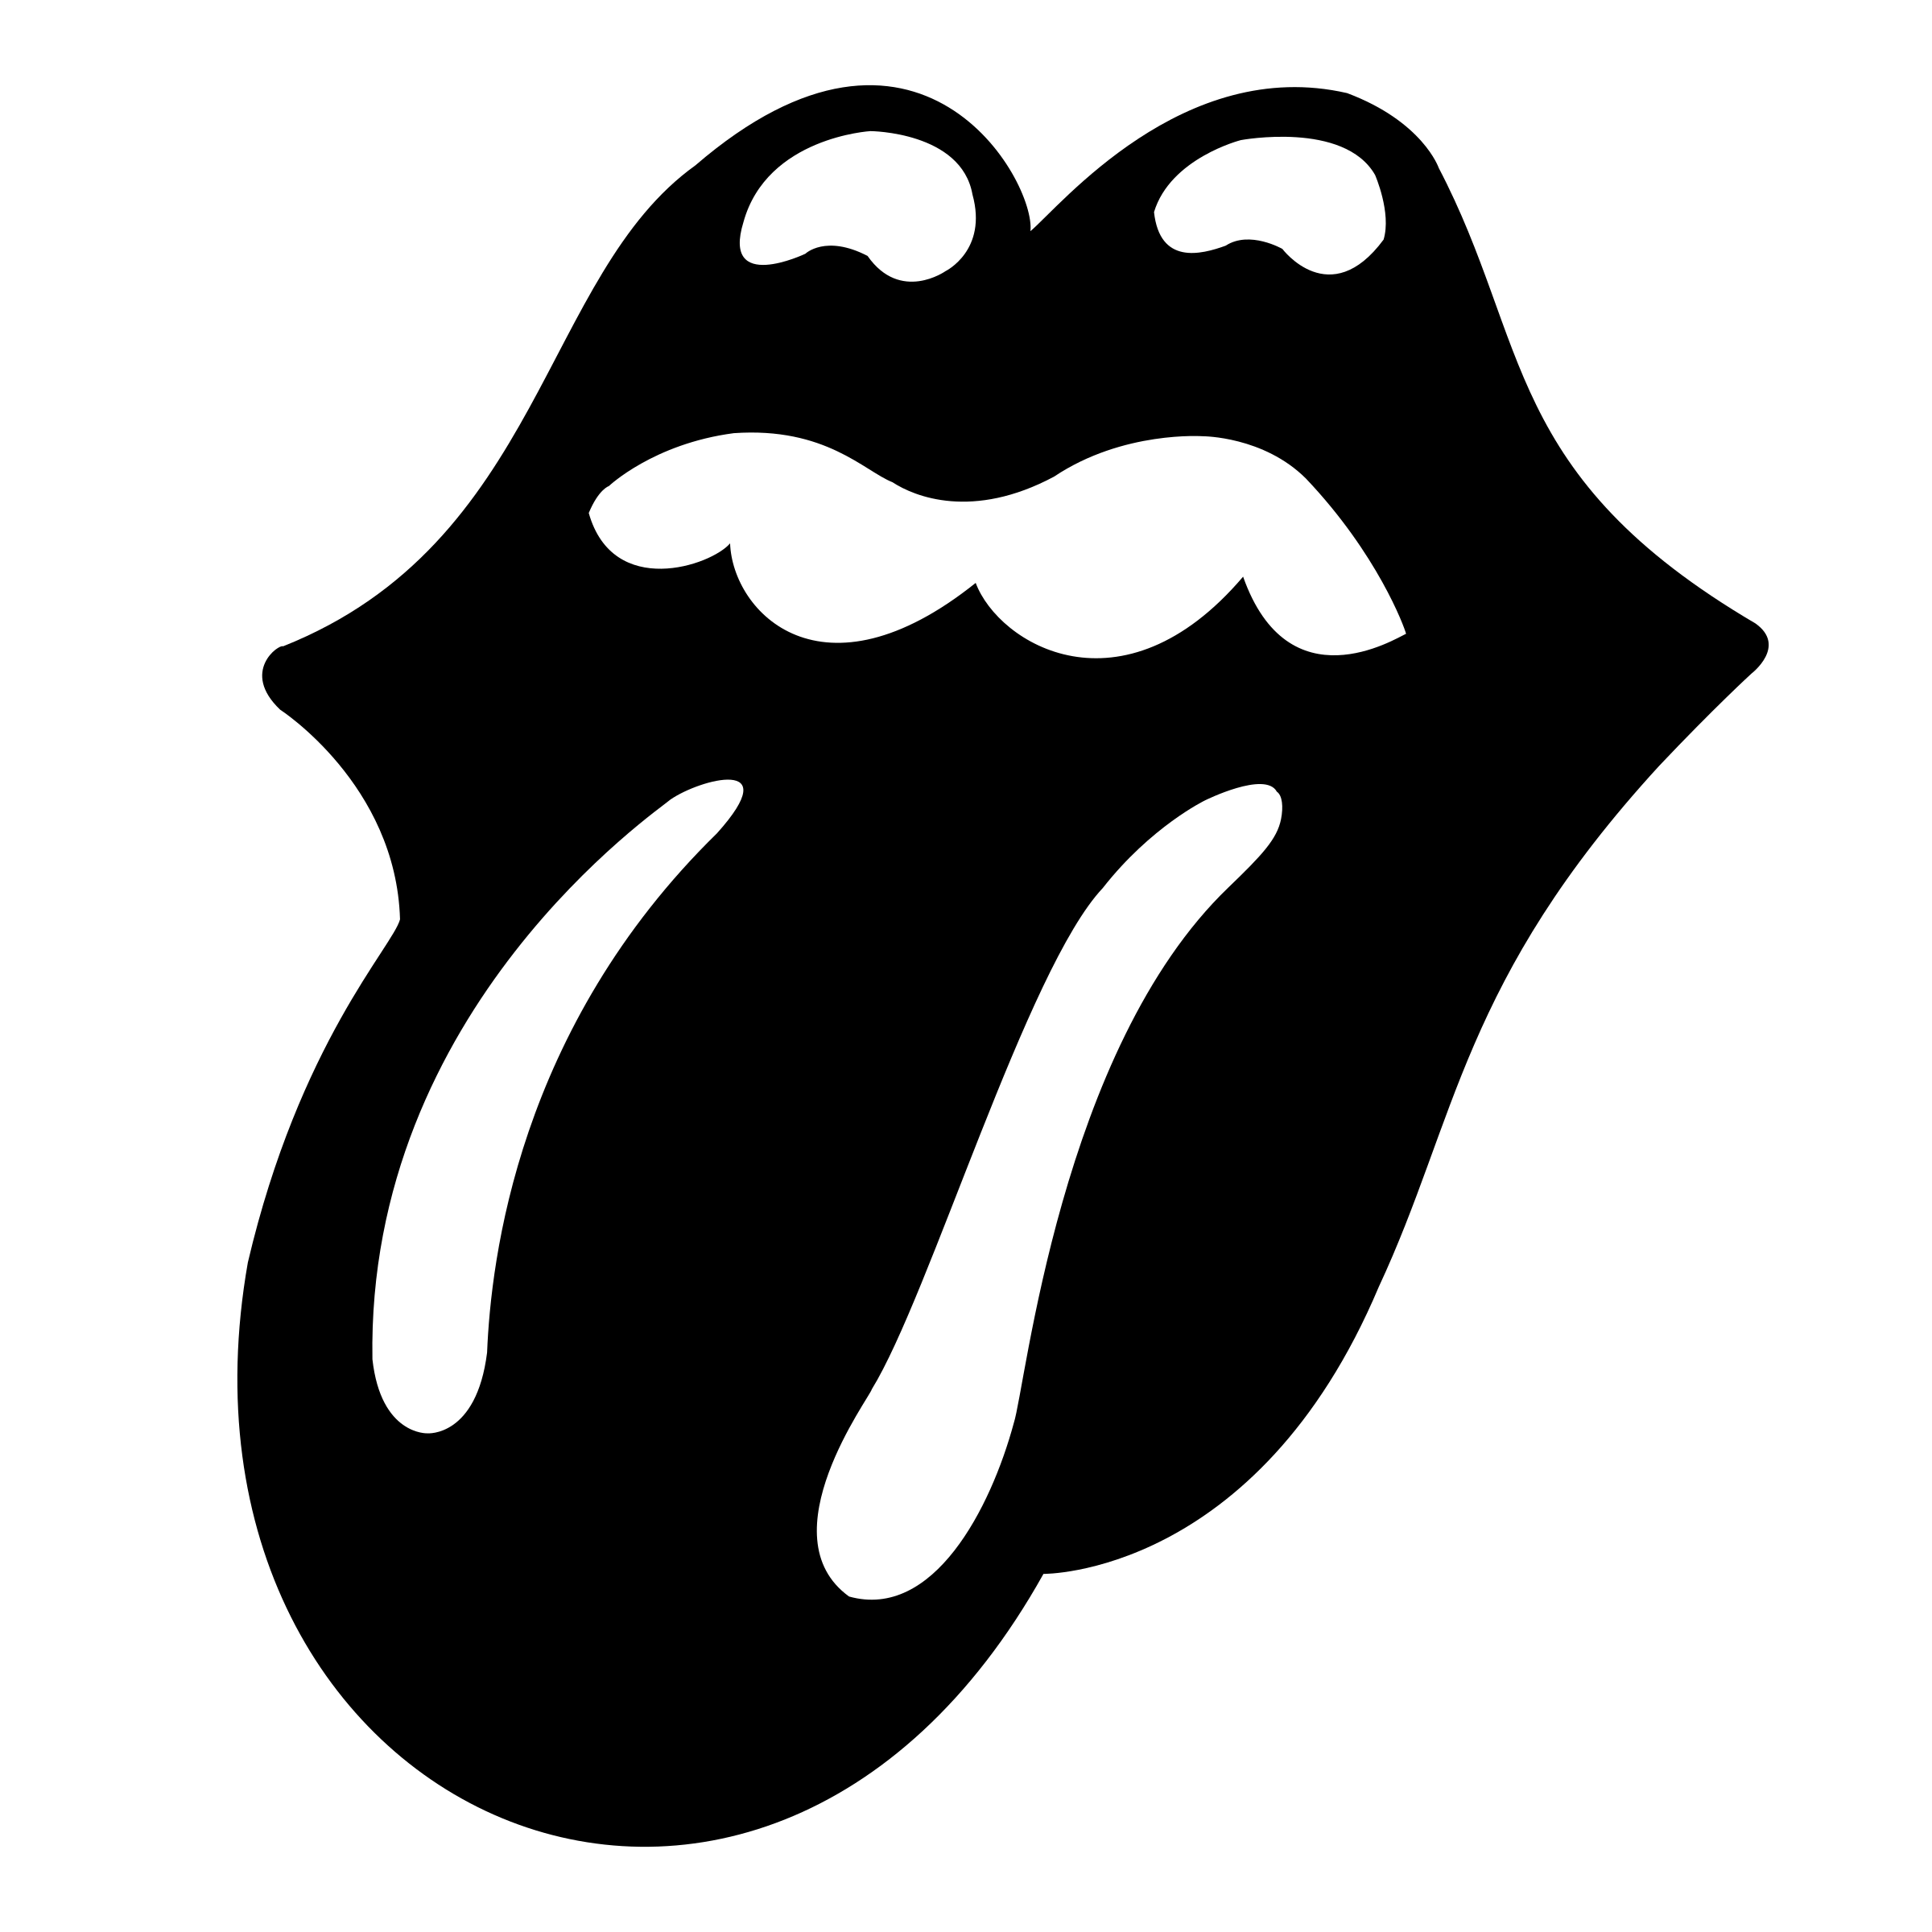 Mouth svg tongue. The rolling stones logo